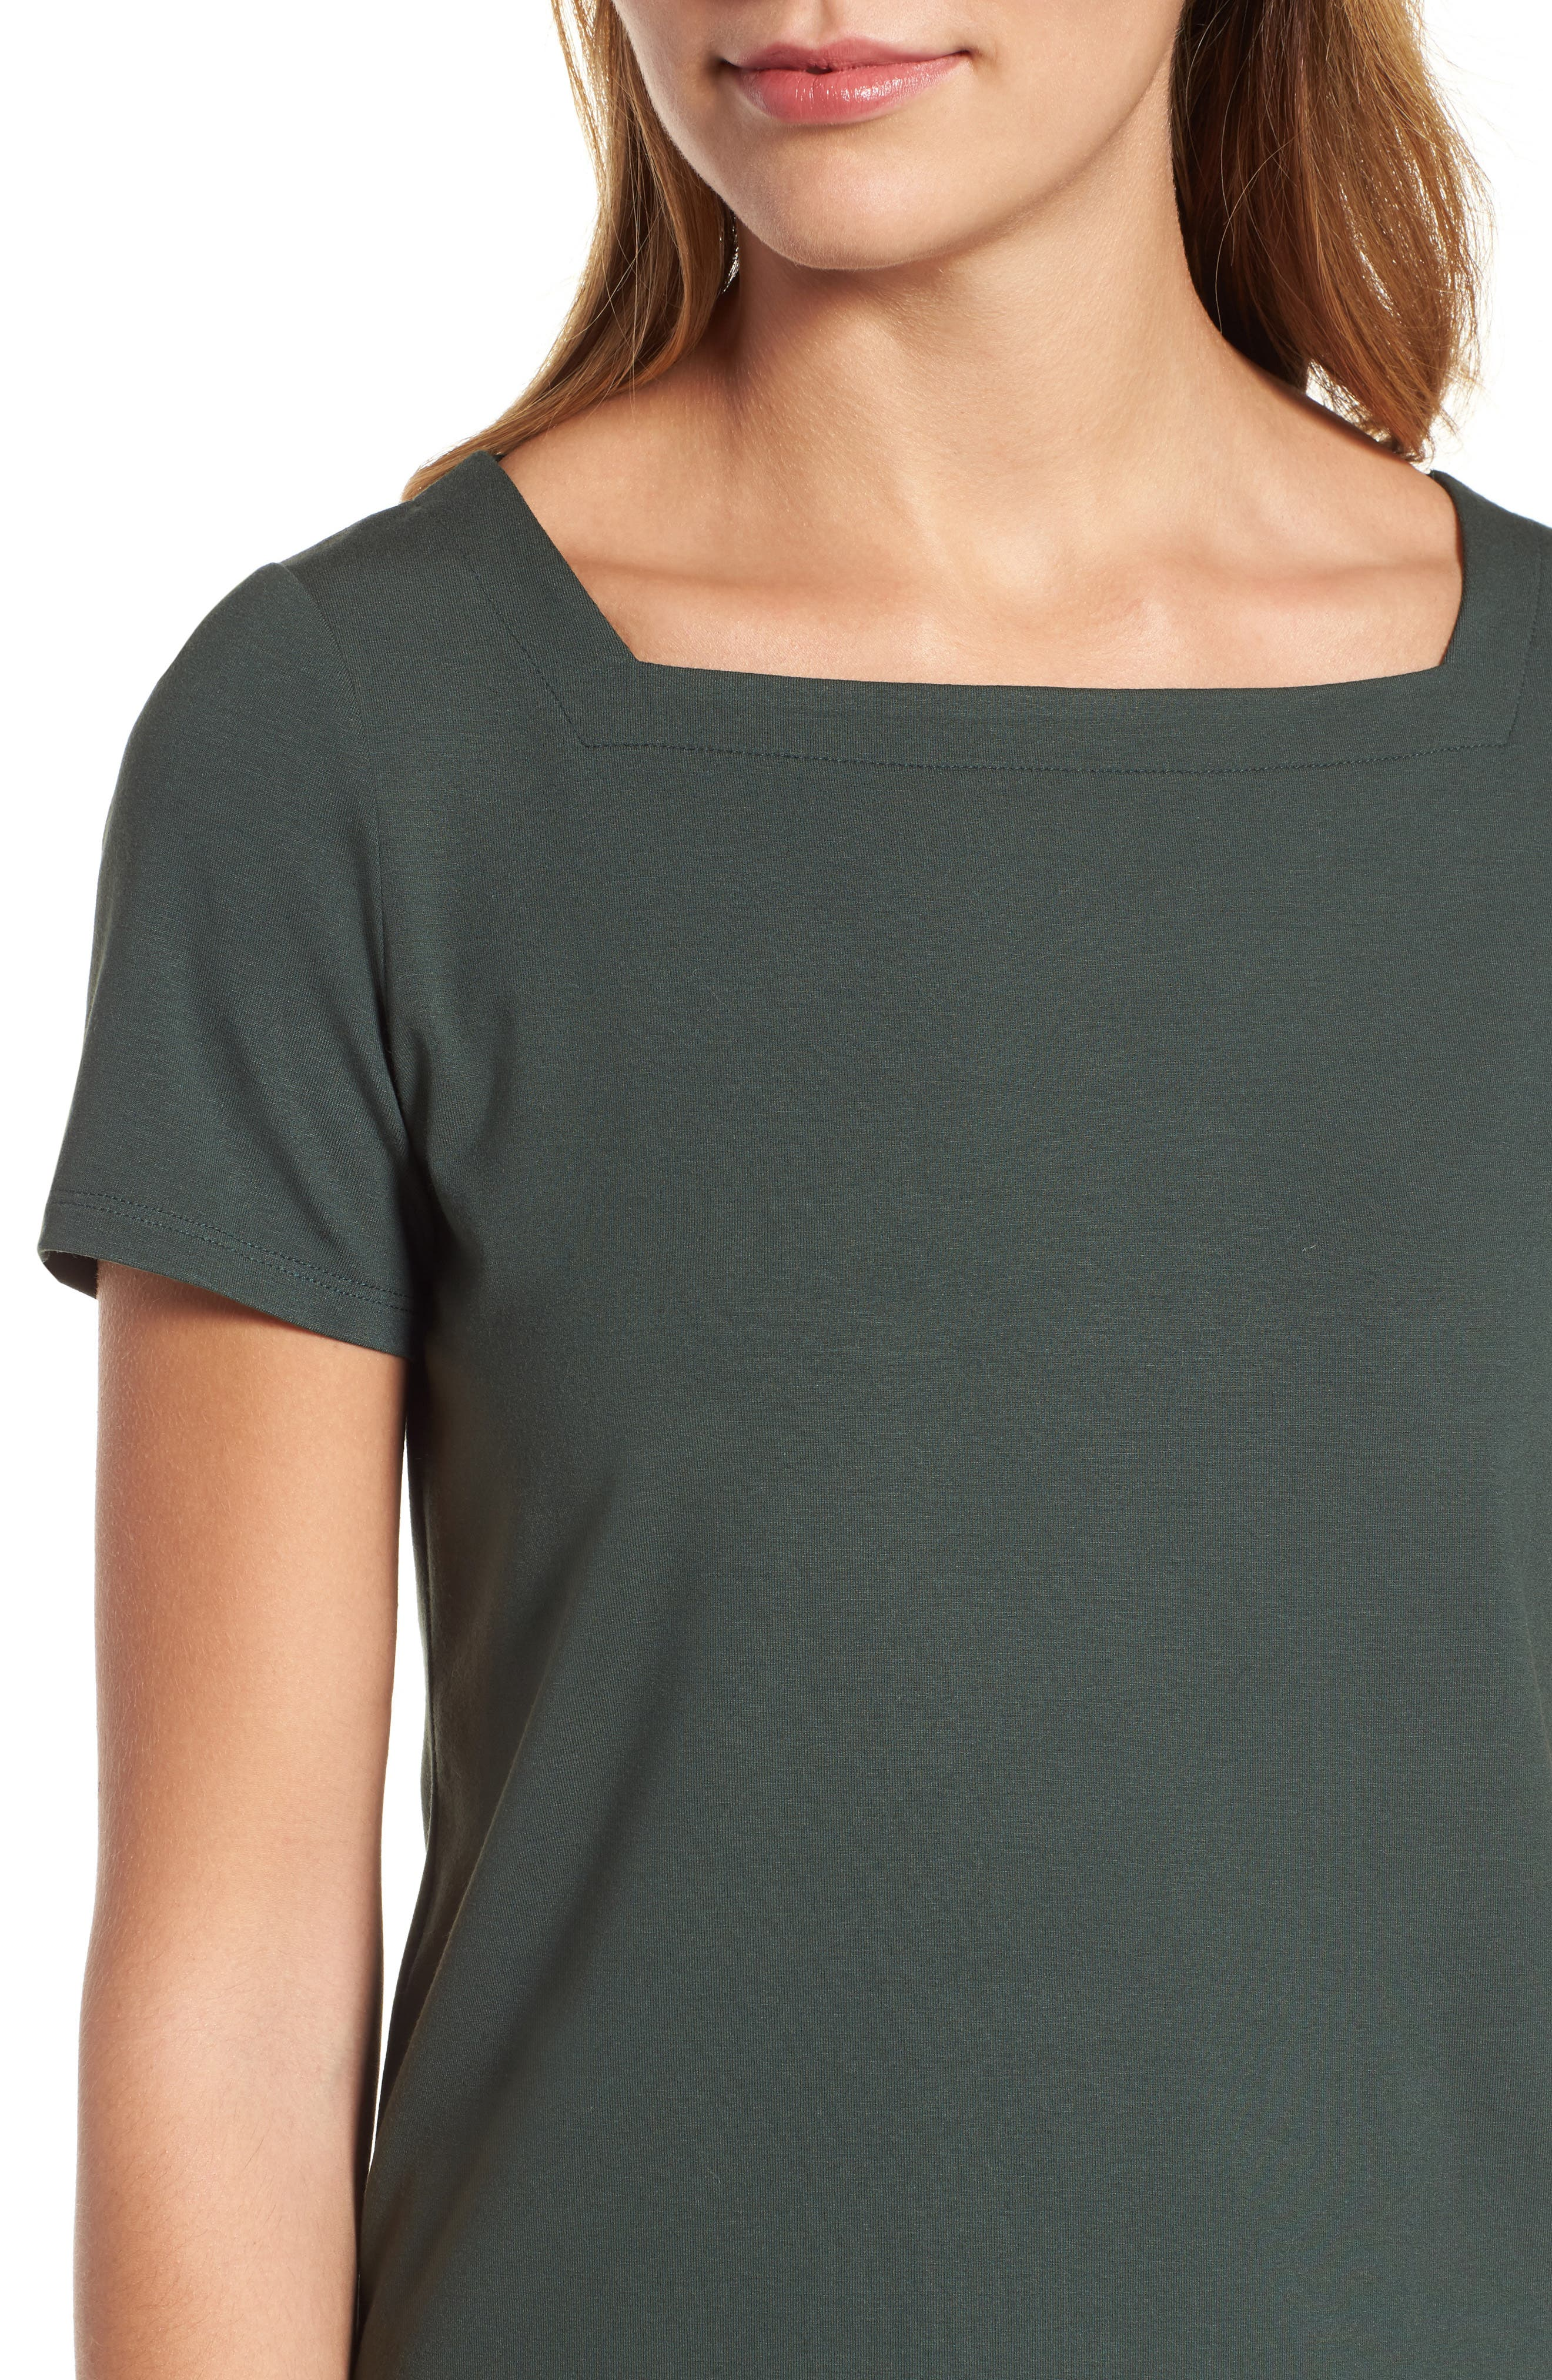 EILEEN FISHER,                             Square Neck Jersey Top,                             Alternate thumbnail 4, color,                             351